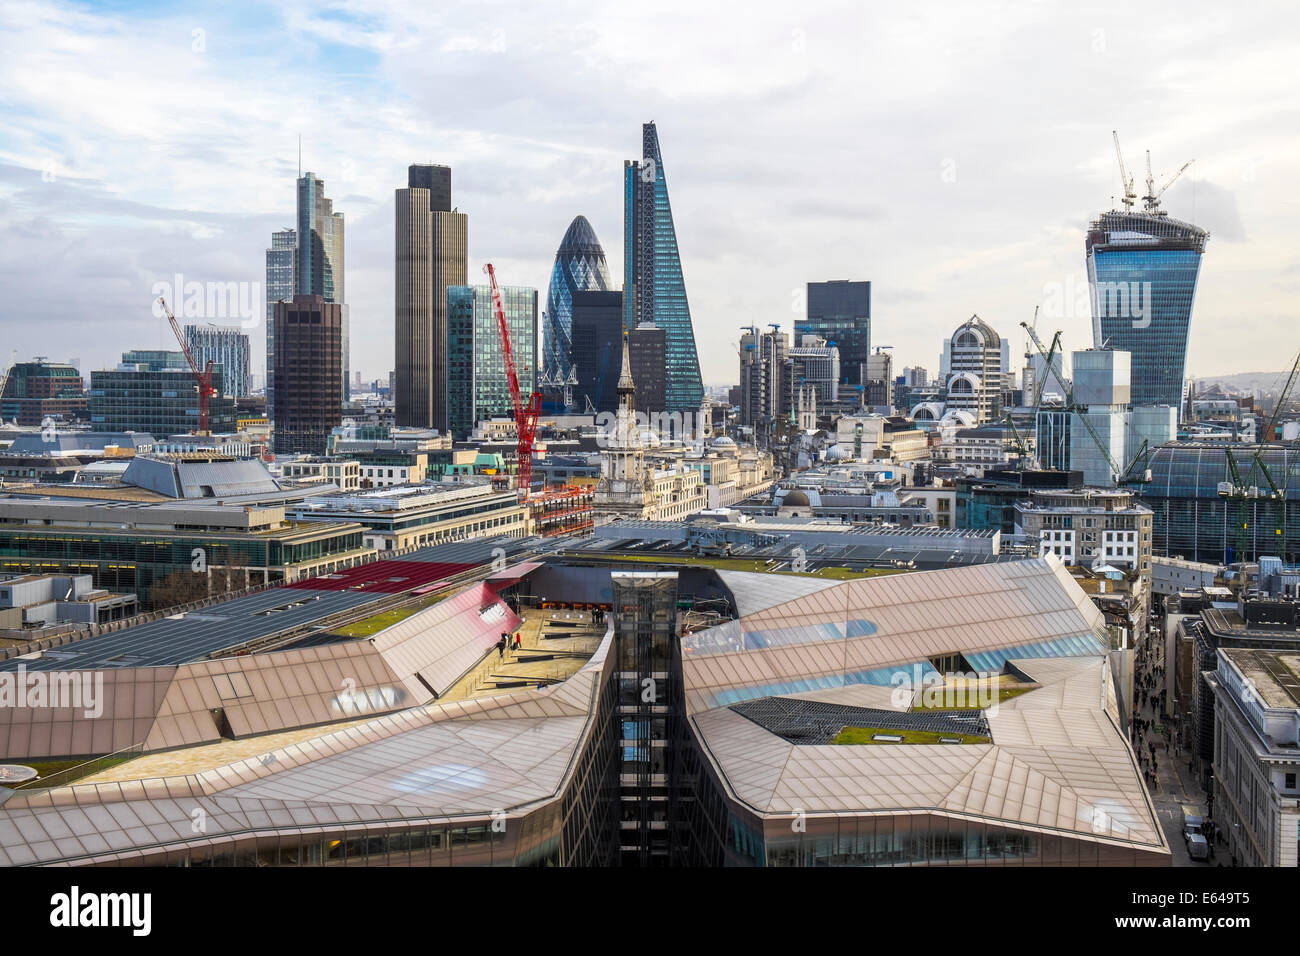 View to The Gherkin, Walkie Talkie building and Financial District, London, UK - Stock Image